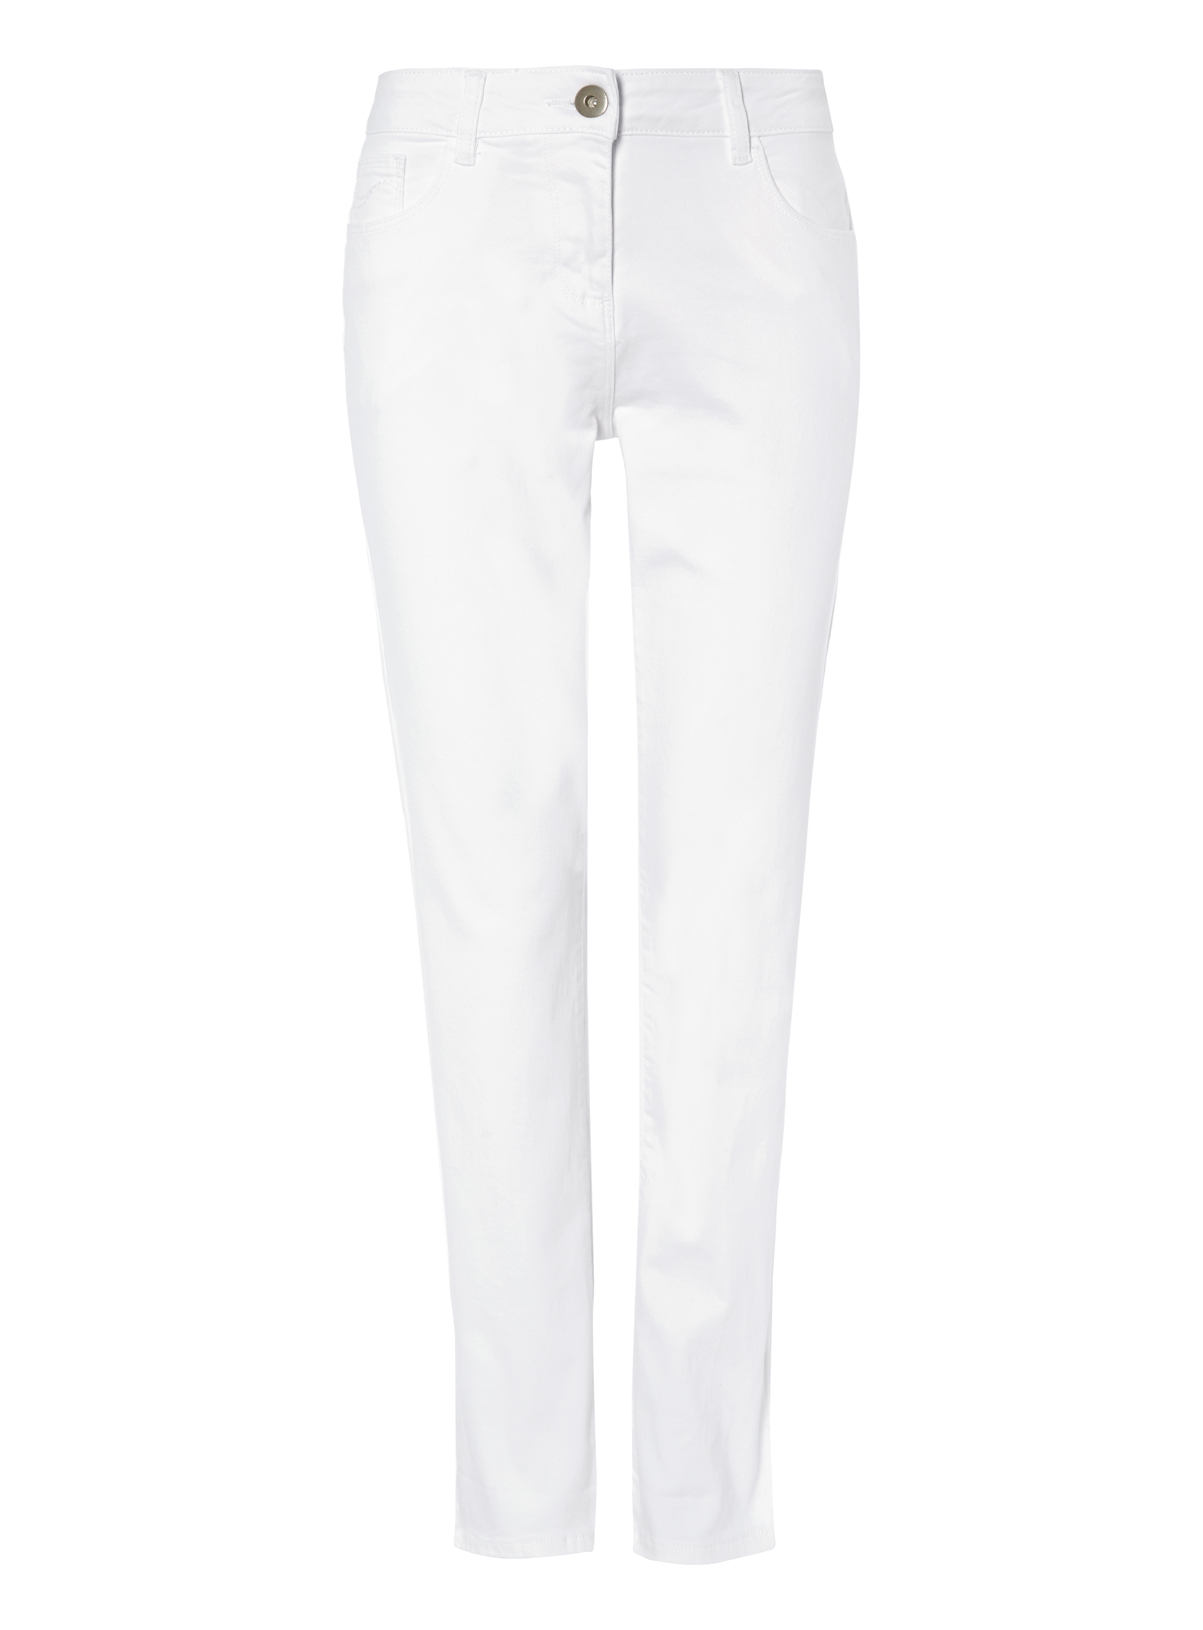 Womens White Girlfriend Jeans | Tu clothing